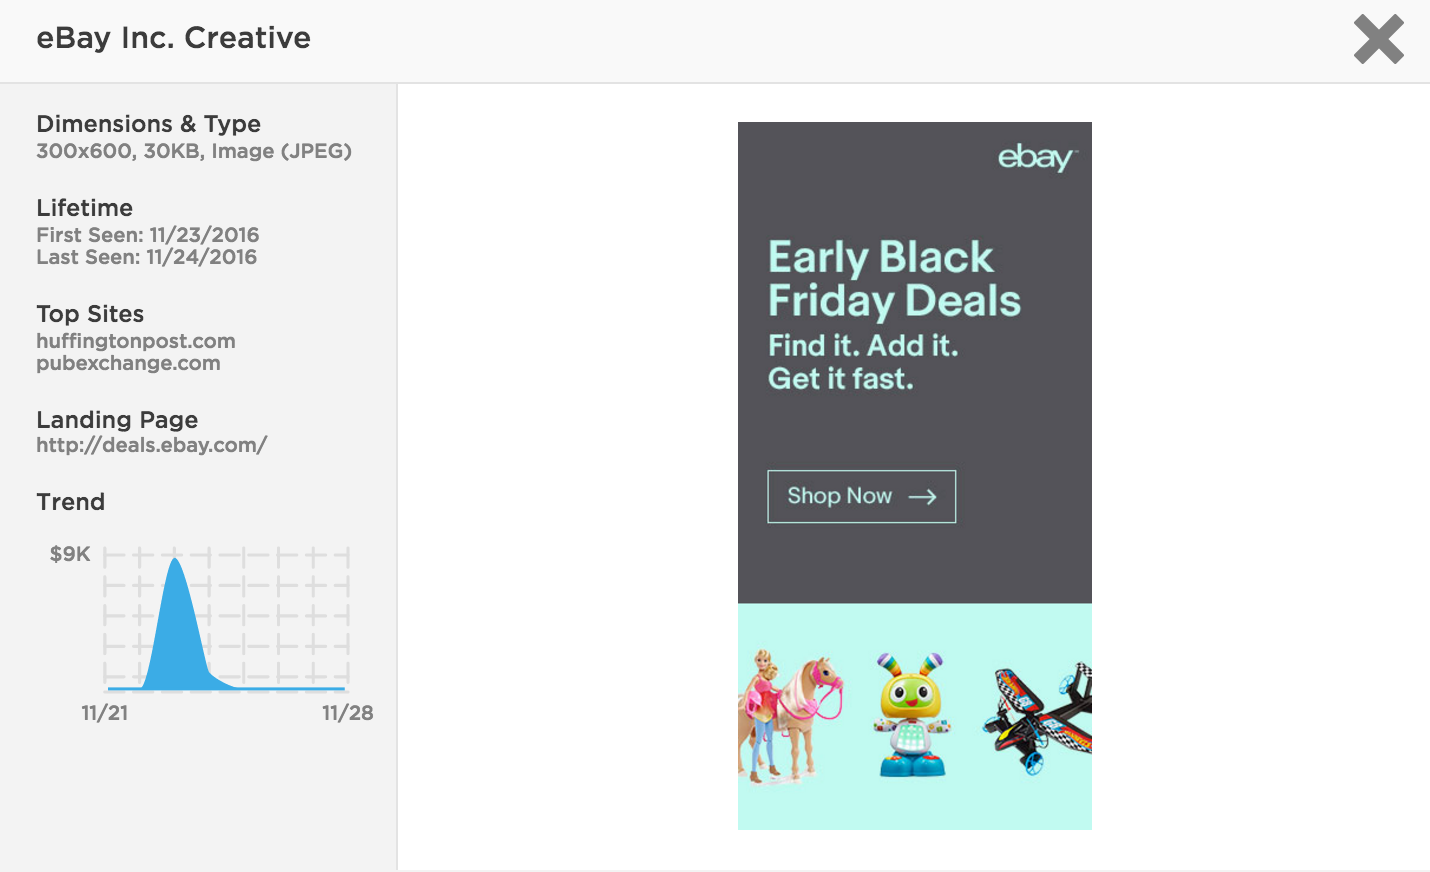 ebay_black_friday_creative_2.png